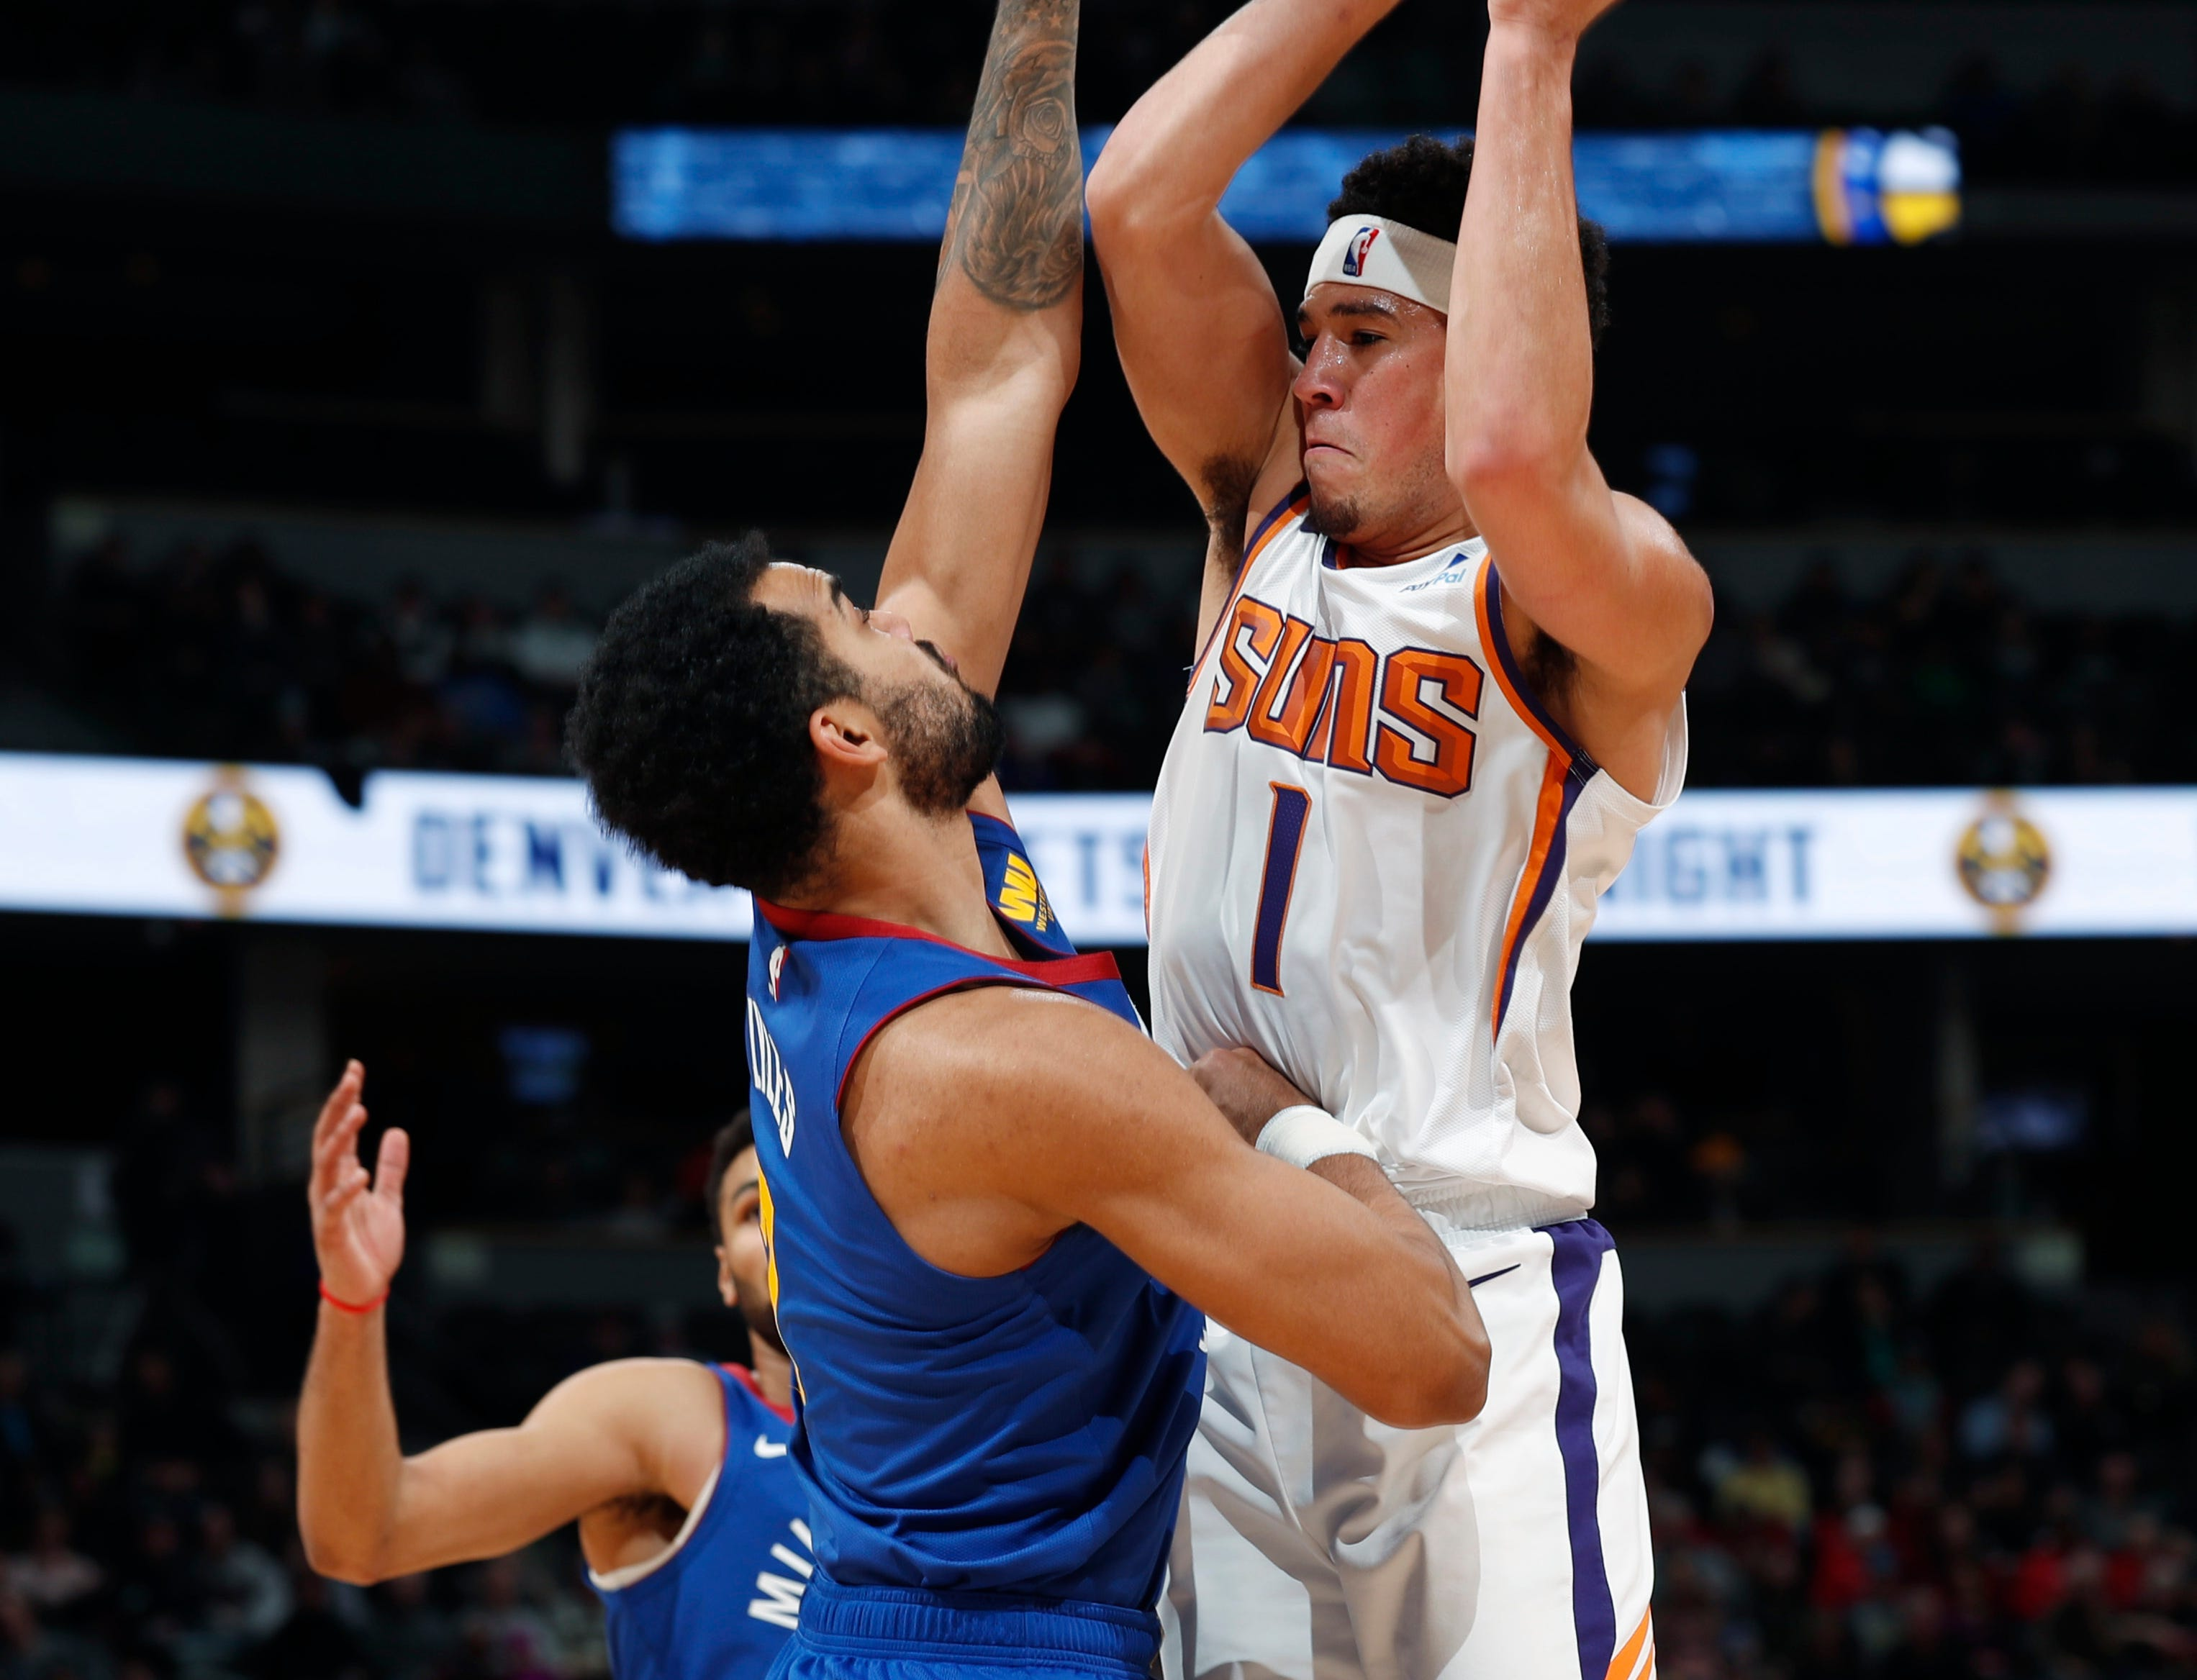 Phoenix Suns guard Devin Booker, right, goes up to shoot as Denver Nuggets forward Trey Lyles defends in the first half of an NBA basketball game Friday, Jan. 25, 2019, in Denver. (AP Photo/David Zalubowski)